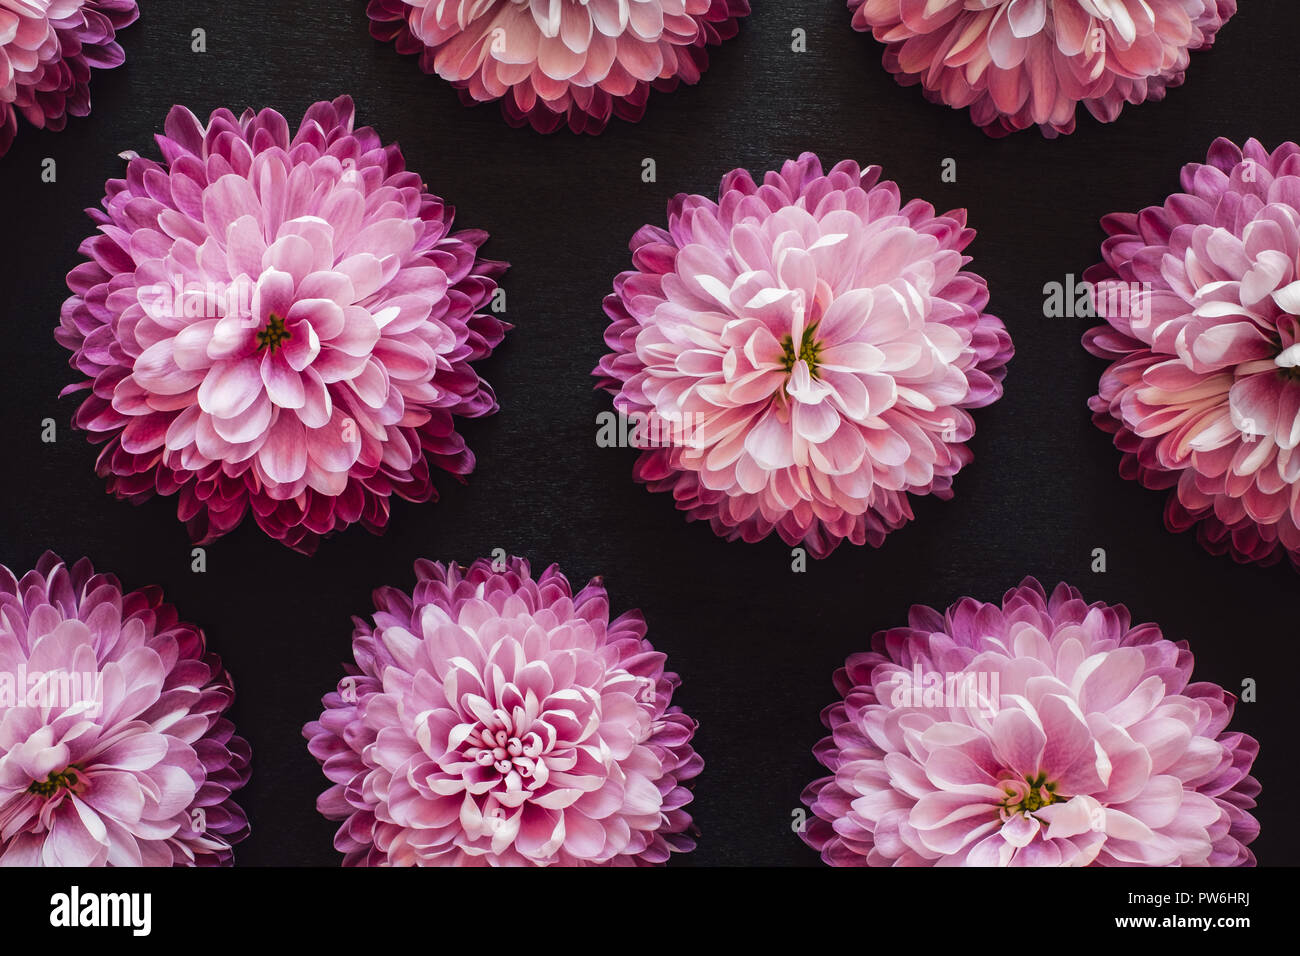 Pink Mums Spaced on Black Table - Stock Image